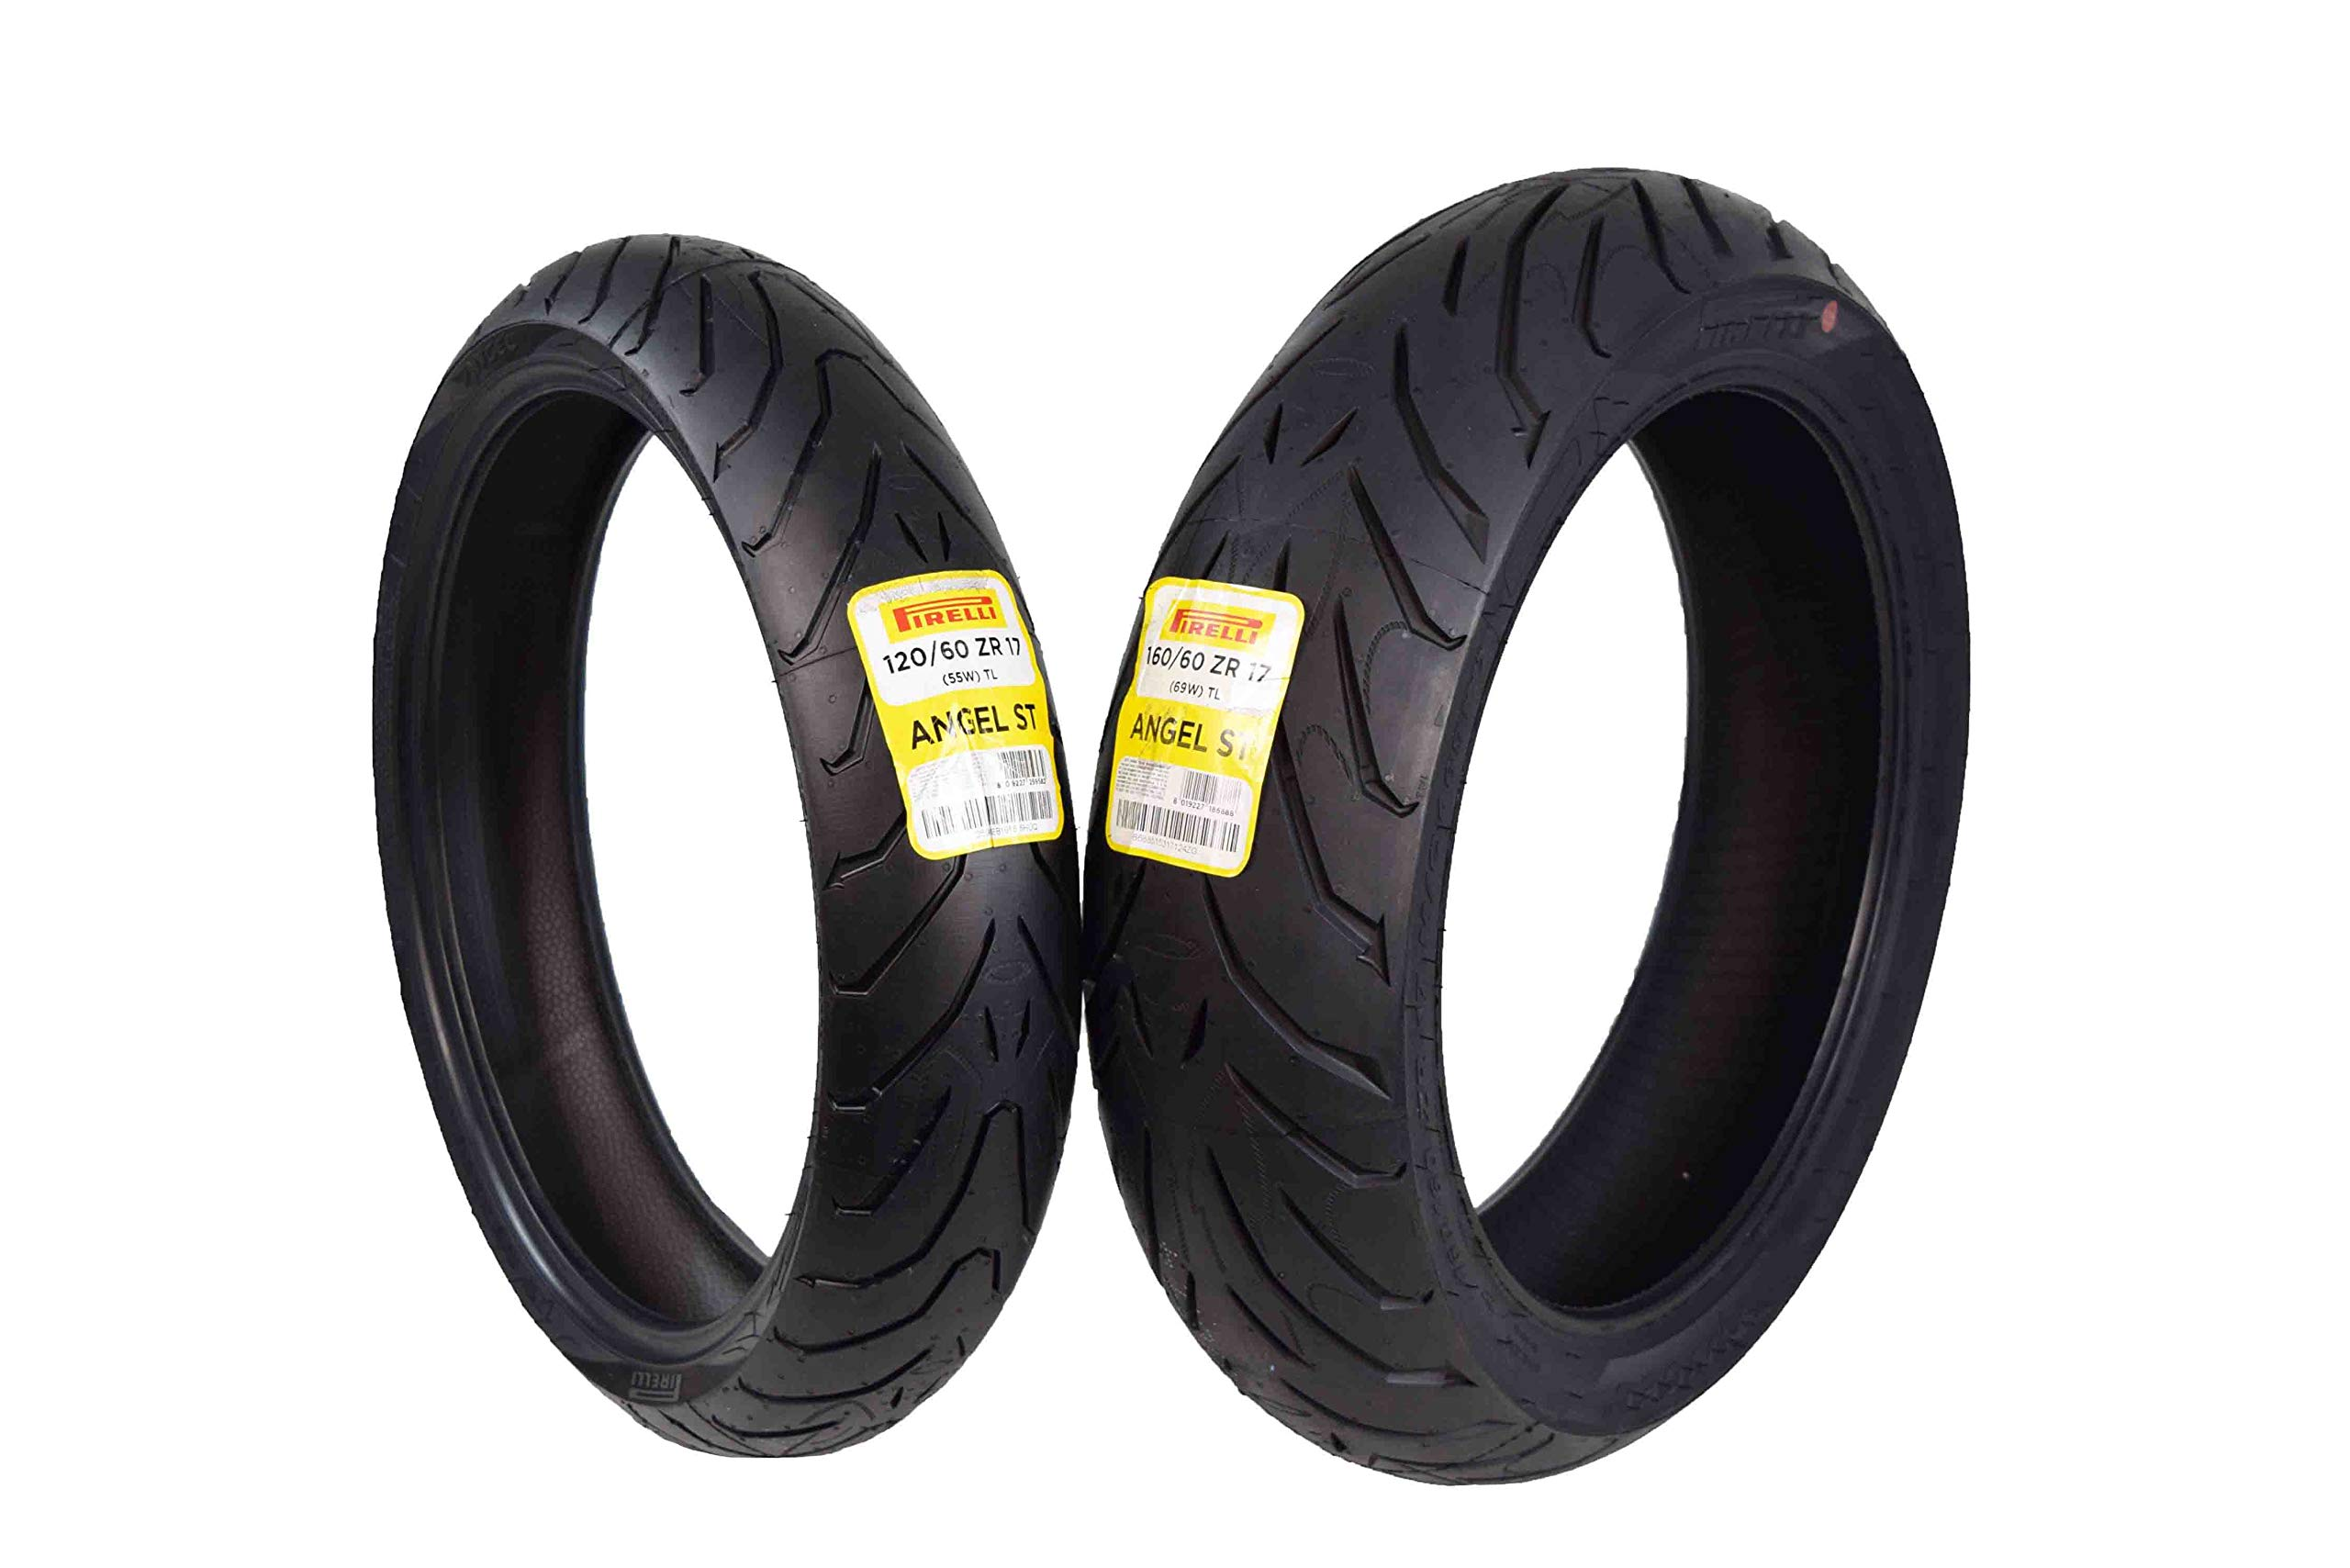 Pirelli Angel ST Front & Rear Street Sport Touring Motorcycle Tires (1x Front 120/60ZR17 1x Rear 160/60ZR17) by Pirelli